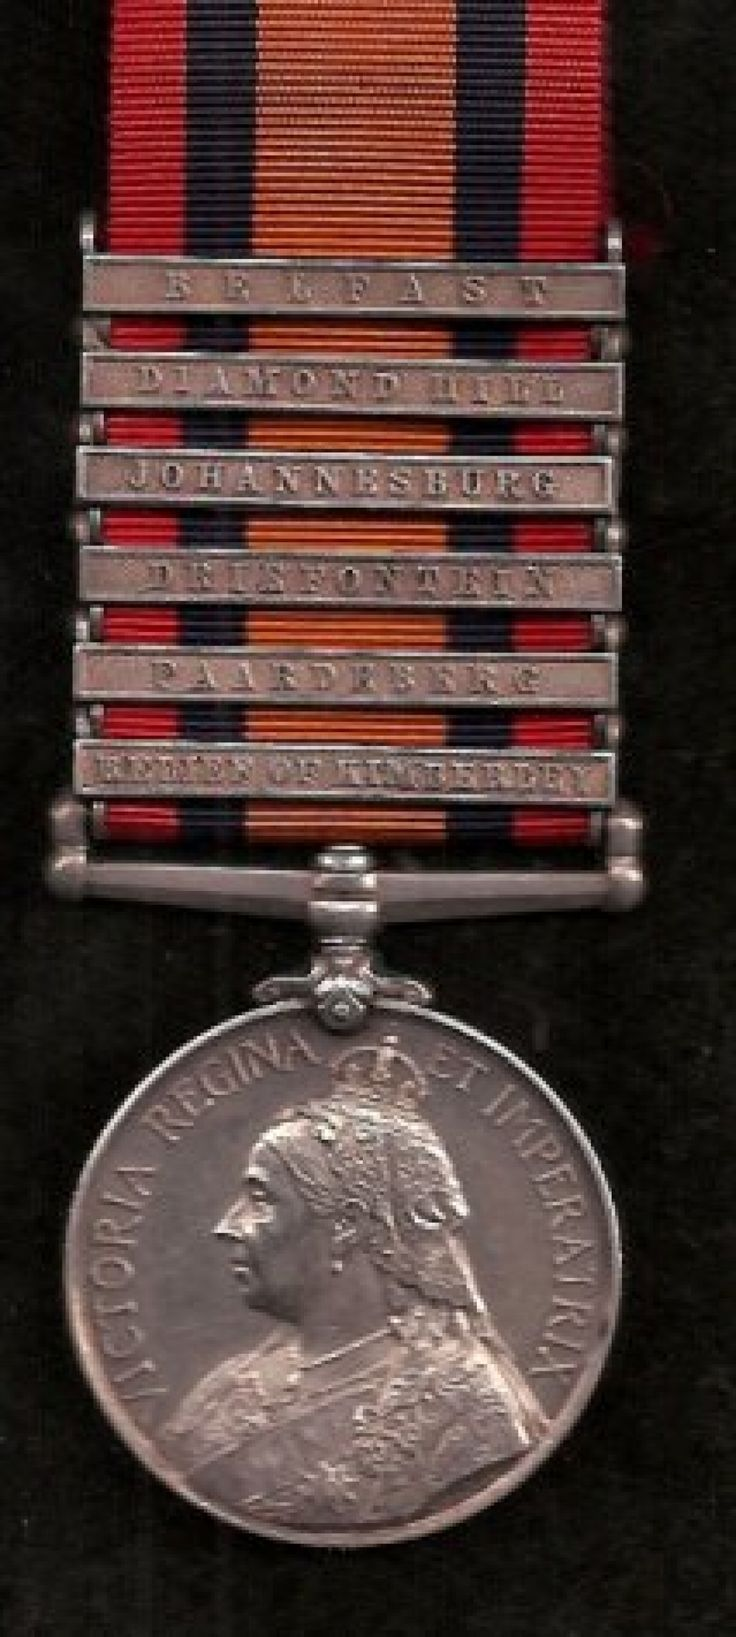 Queen's South Africa Medal, with 6 Clasps - BELFAST, DIAMOND HILL, JOHANNESBURG, DRIEFONTEIN, PAARDEBURG, RELIEF OF KIMBERLEY